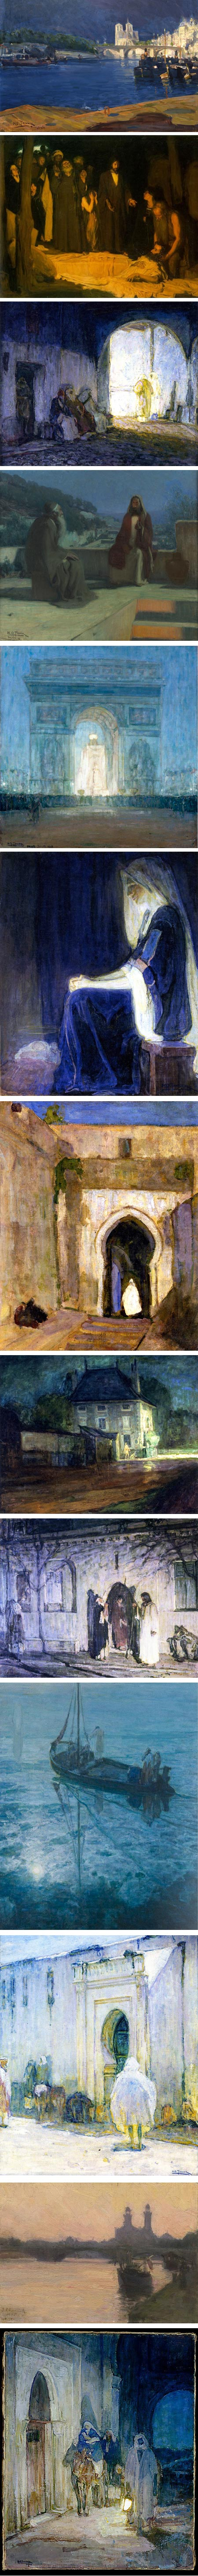 Henry Ossawa Tanner